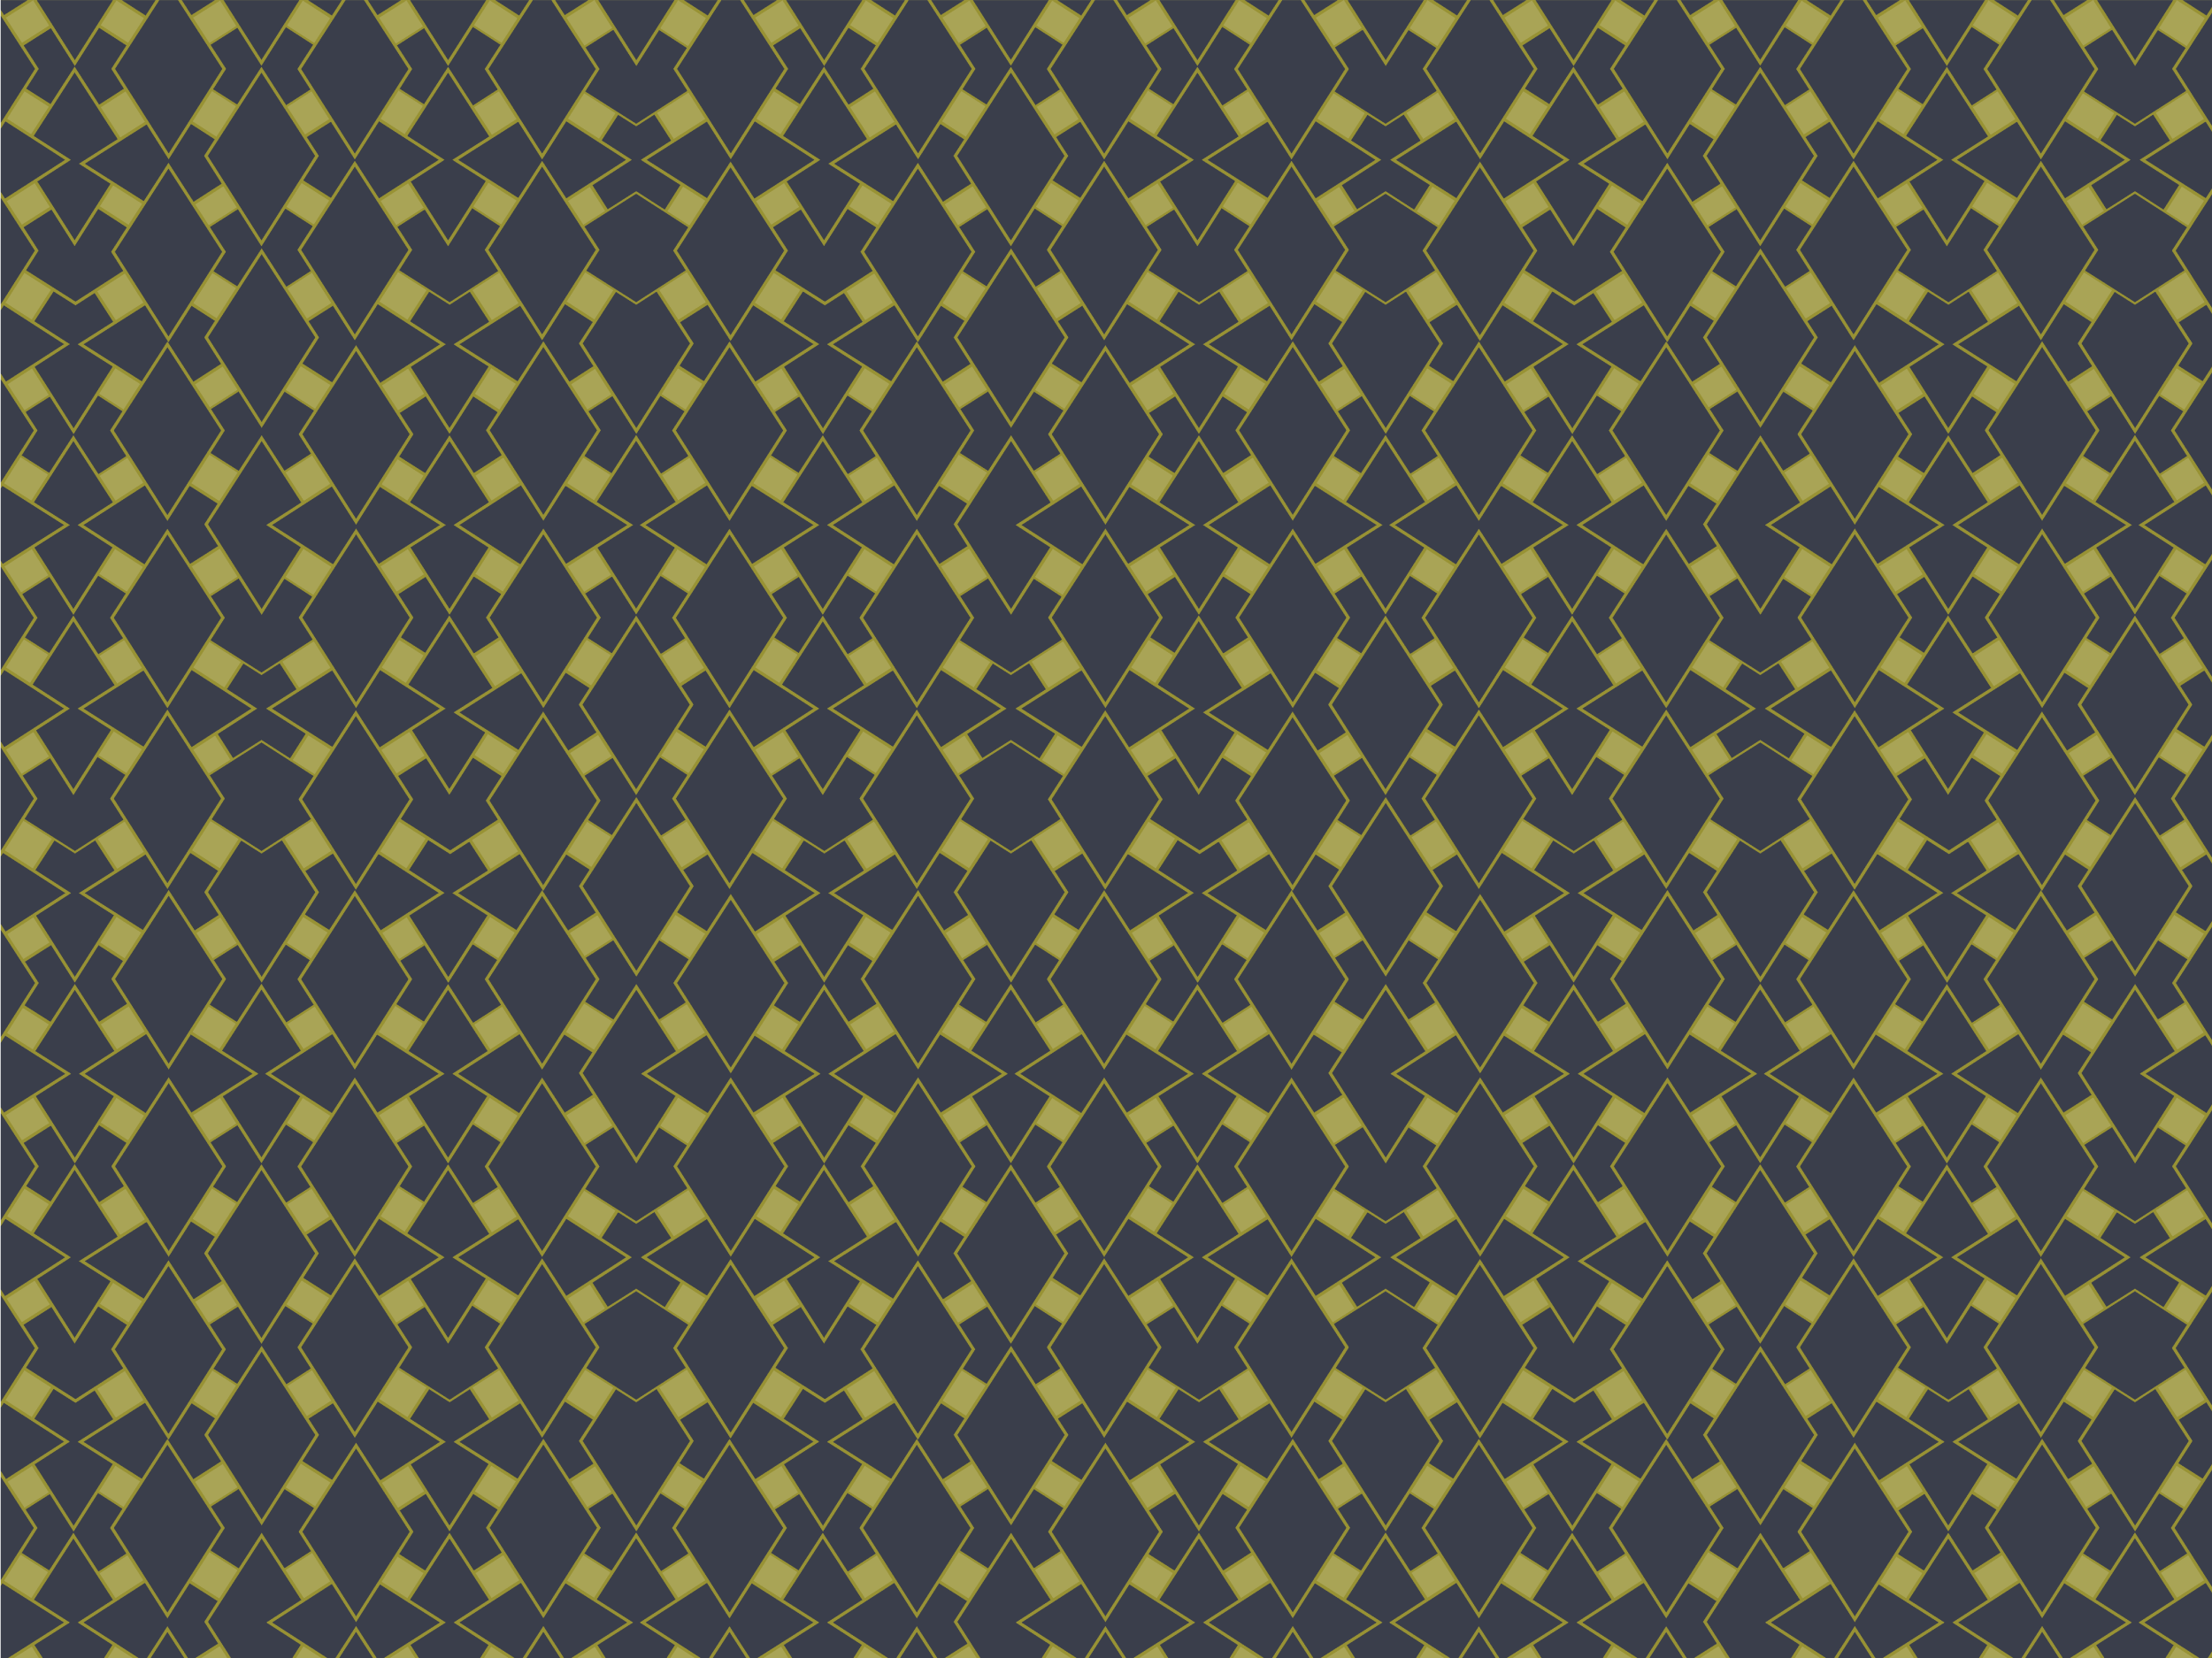 rgb-for-web-Diamond-Mid-century-modern-navy-with-chartreuse-back.png